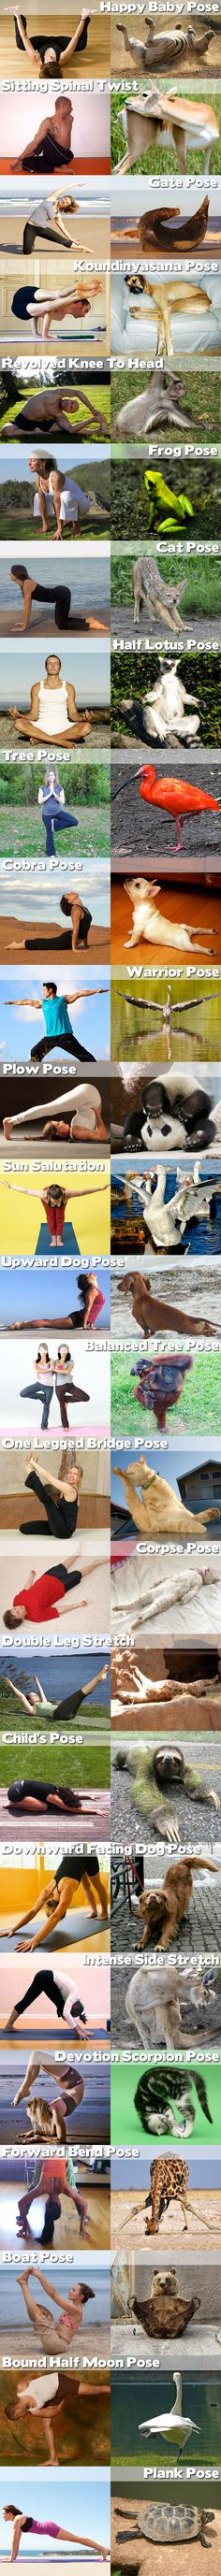 yoga pose - Dump A Day Animal Pictures, Funny Pictures, Do Exercise, Exercise Humor, Yoga Humor, Animal Yoga, Dump A Day, Types Of Yoga, Cute Funny Animals